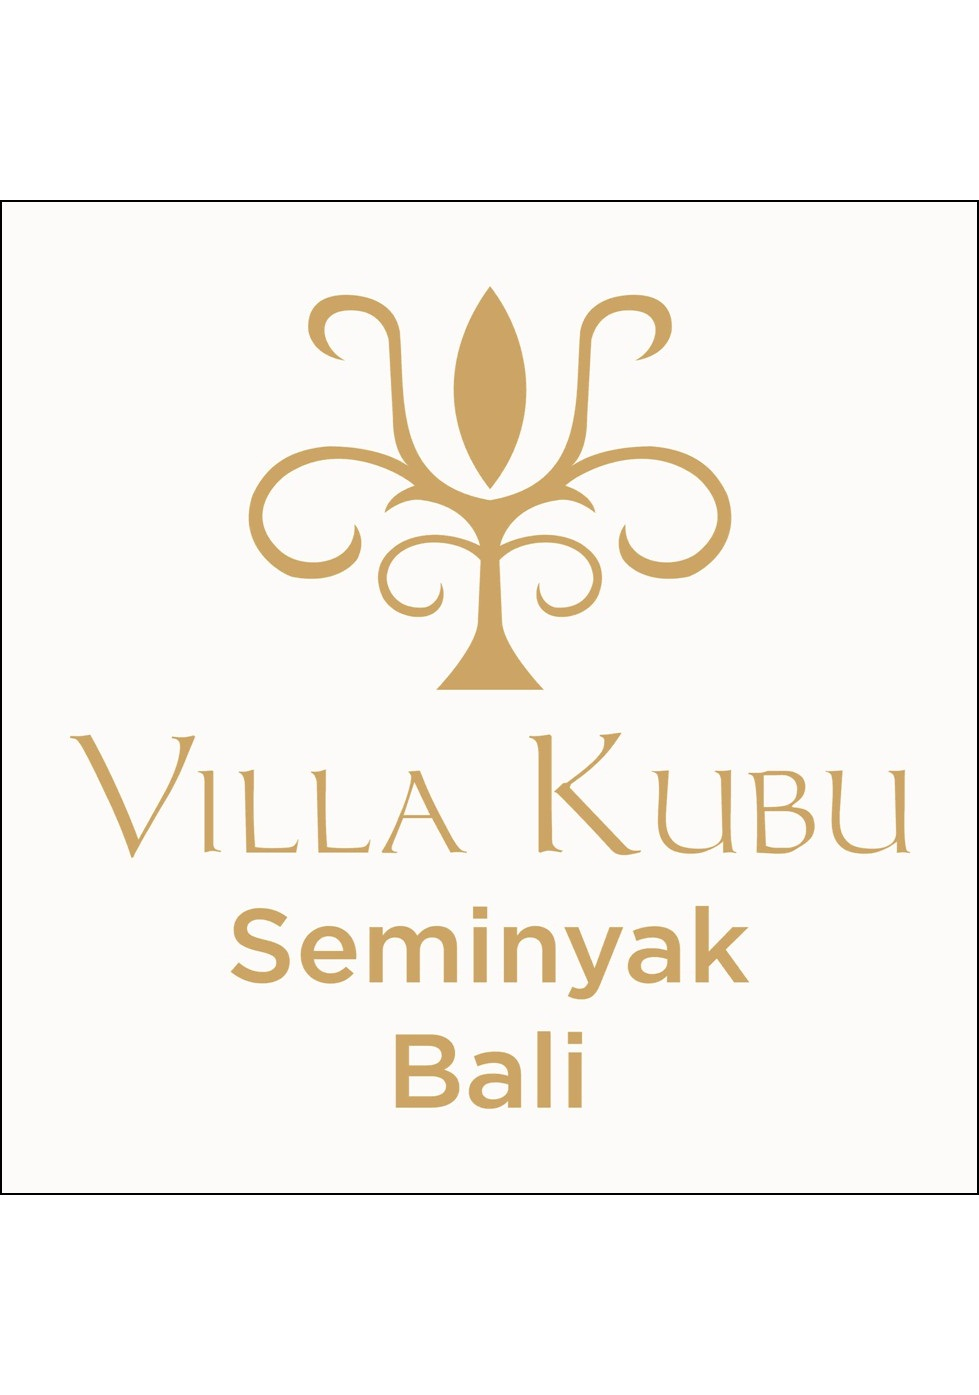 1 - 2 - 3 - 5 - 8 Bedroom Luxury Bali Villas with Private Pool in Seminyak. Accommodation for Couples and Families - VillaKubu.com